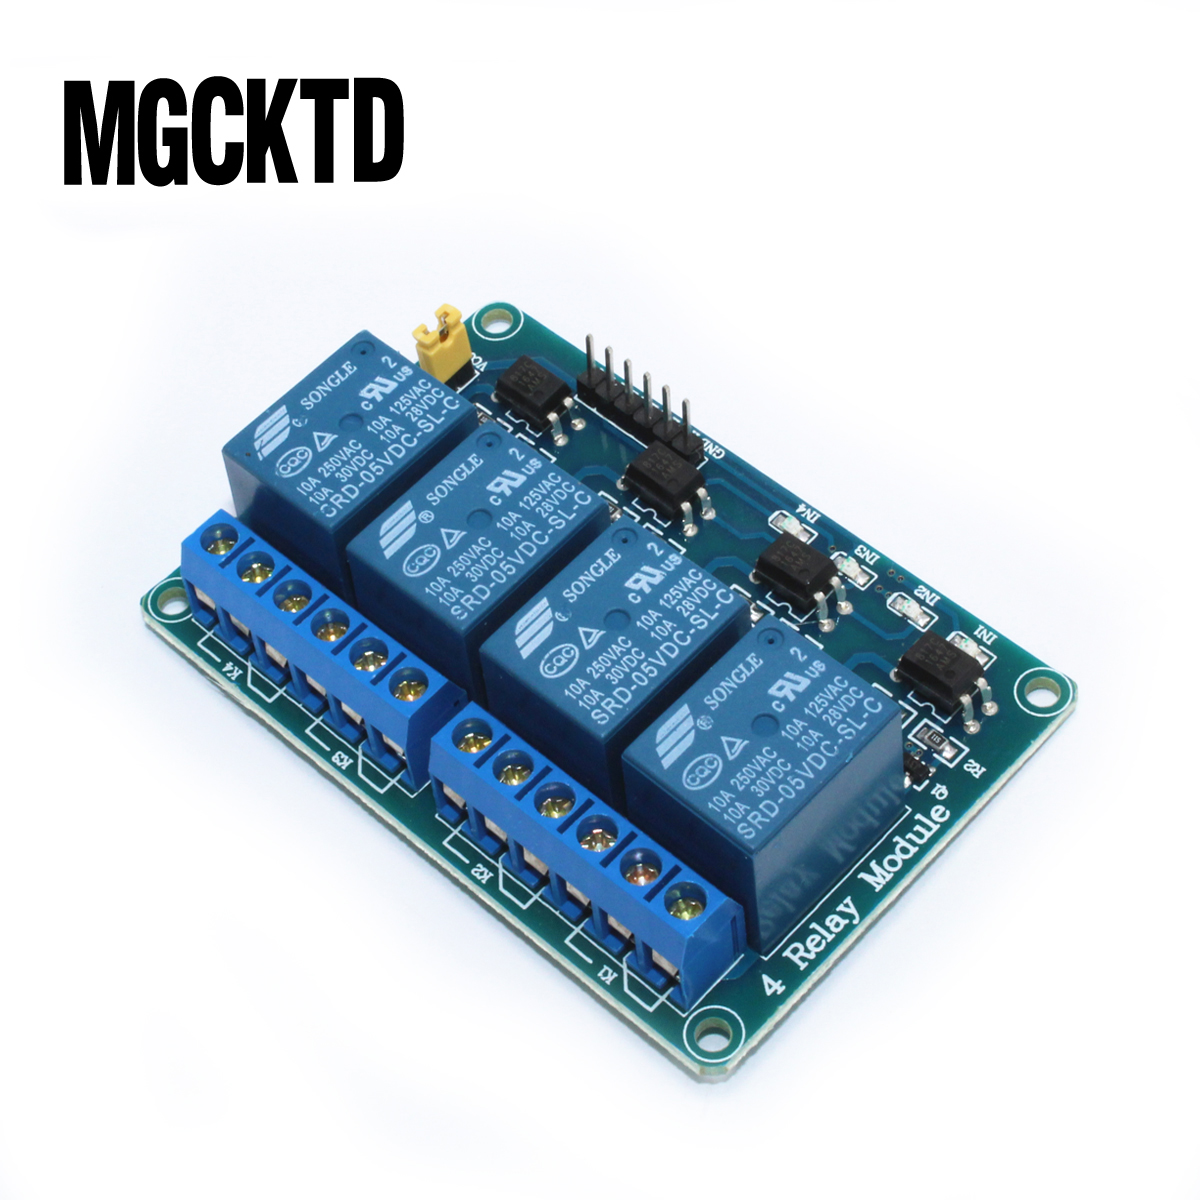 10pcs-4-channel-relay-module-4-channel-relay-control-board-with-optocoupler-relay-output-4-way-relay-module-for-font-b-arduino-b-font